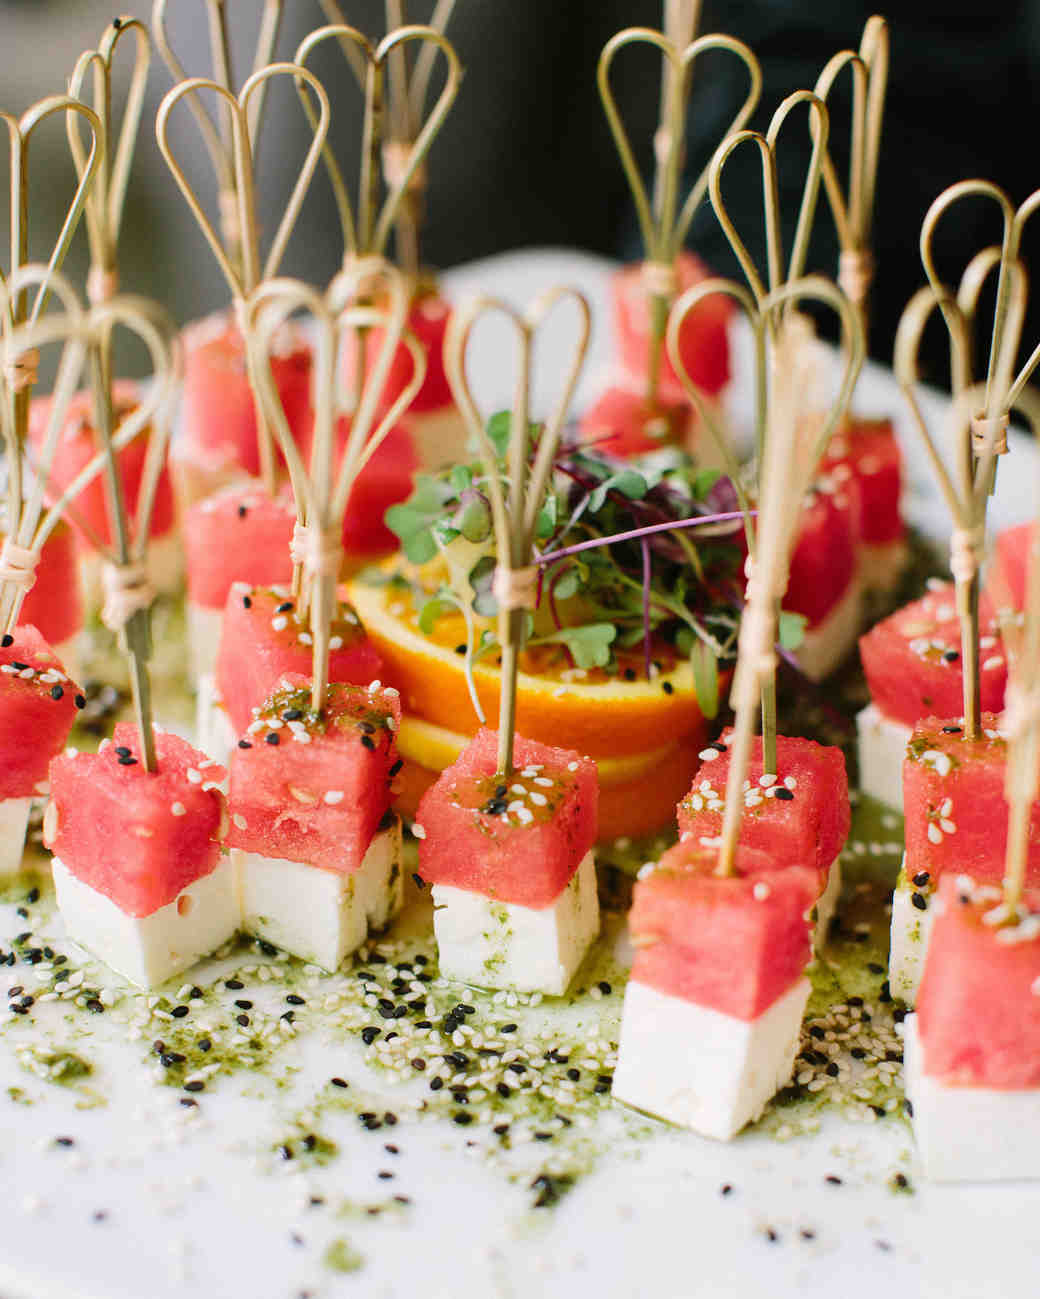 Wedding Finger Foods: 20 Delicious Bites To Serve At Your Bridal Shower